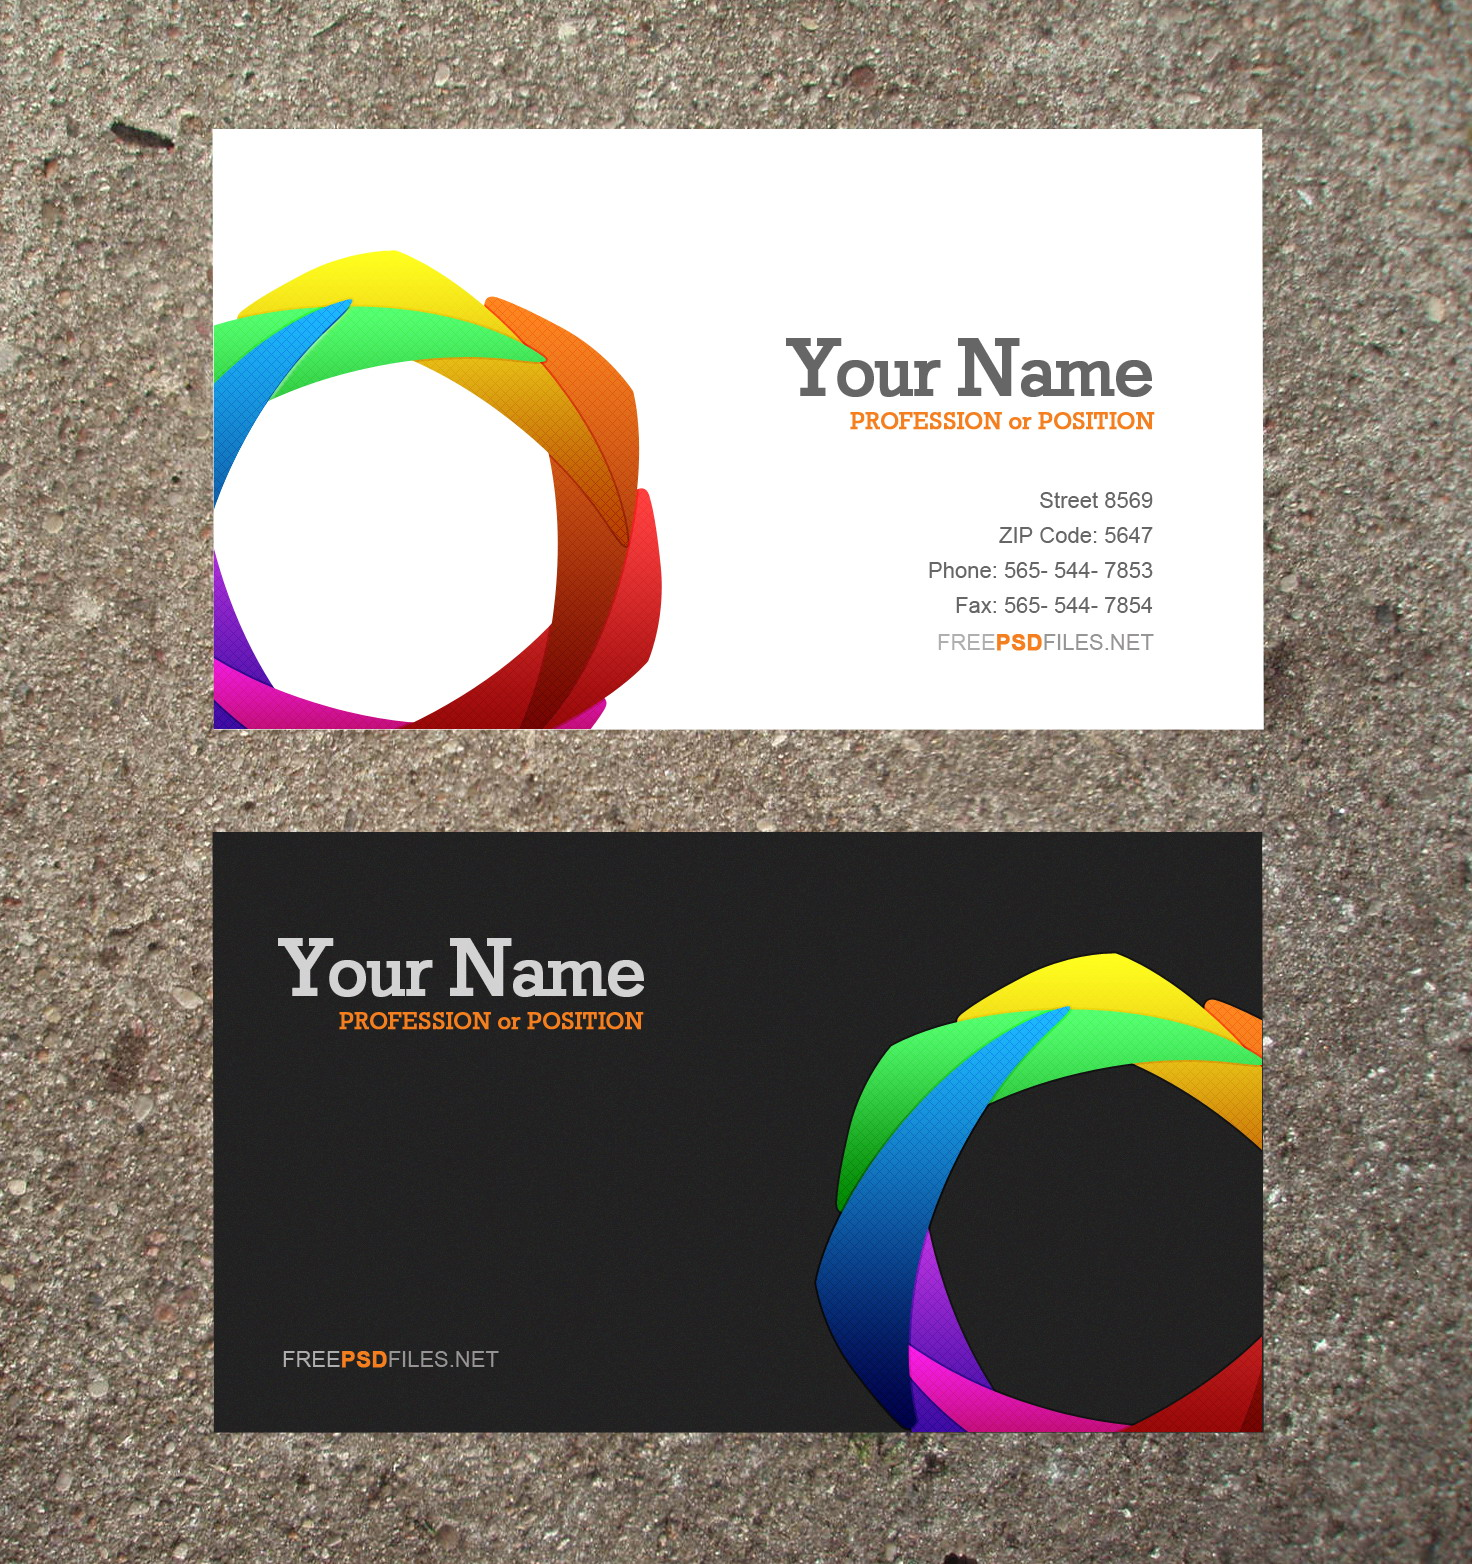 Business card template 28 images recksana business card template business card template 10 modern business card psd template free images free accmission Choice Image